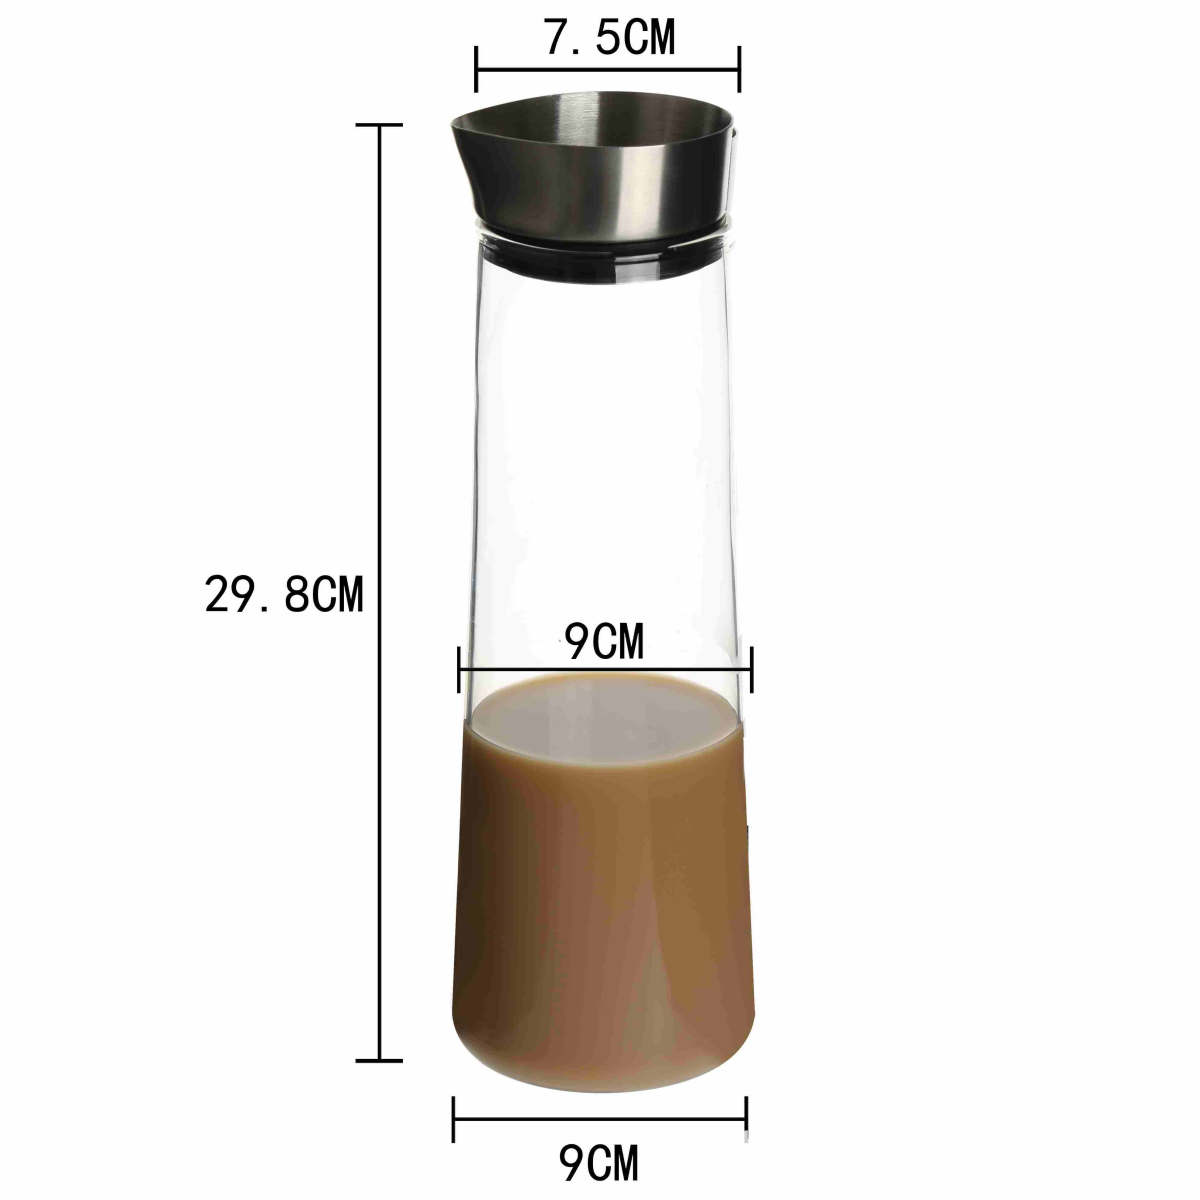 high borosilicate Glass heat cold resistant best quality coffee milk tea carafe pot maker pitcher with airtight stainless steel lid 00 (18)